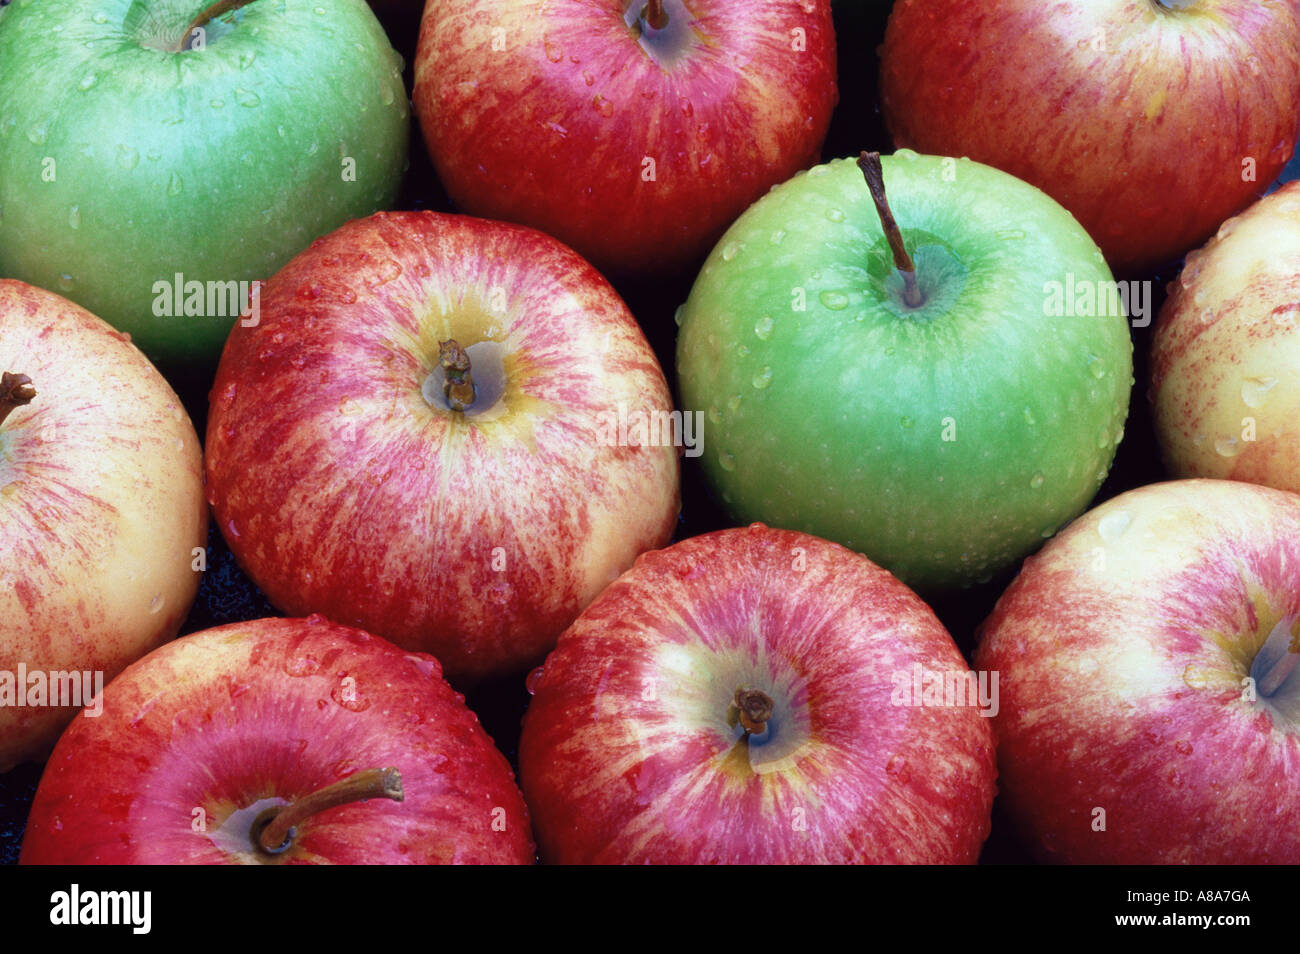 Granny smith and gala apples - Stock Image